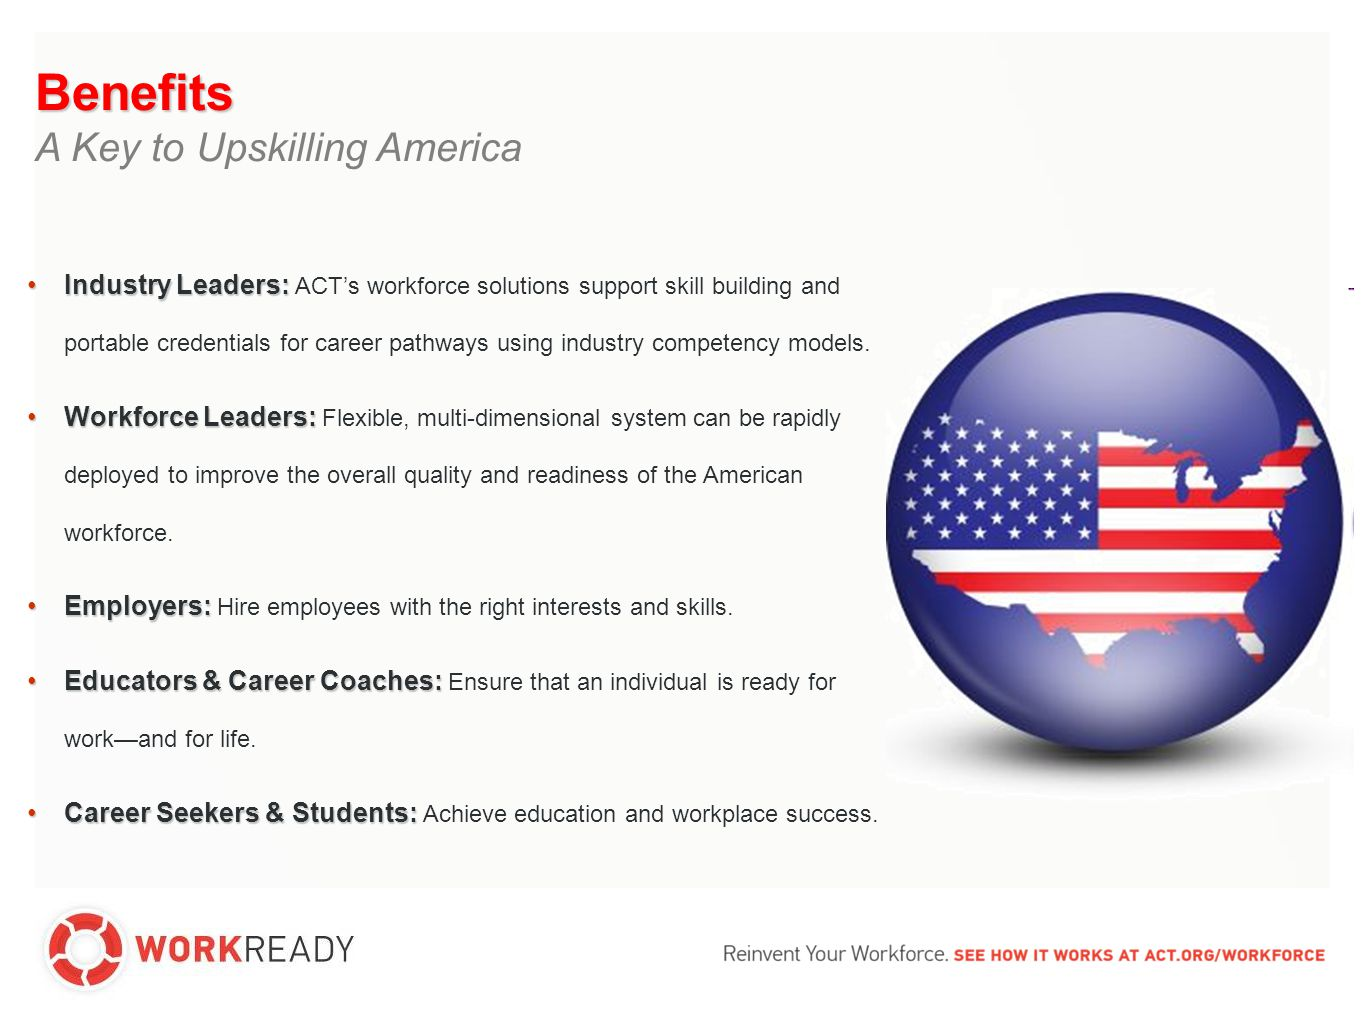 Benefits A Key to Upskilling America Industry Leaders:Industry Leaders: ACT's workforce solutions support skill building and portable credentials for career pathways using industry competency models.